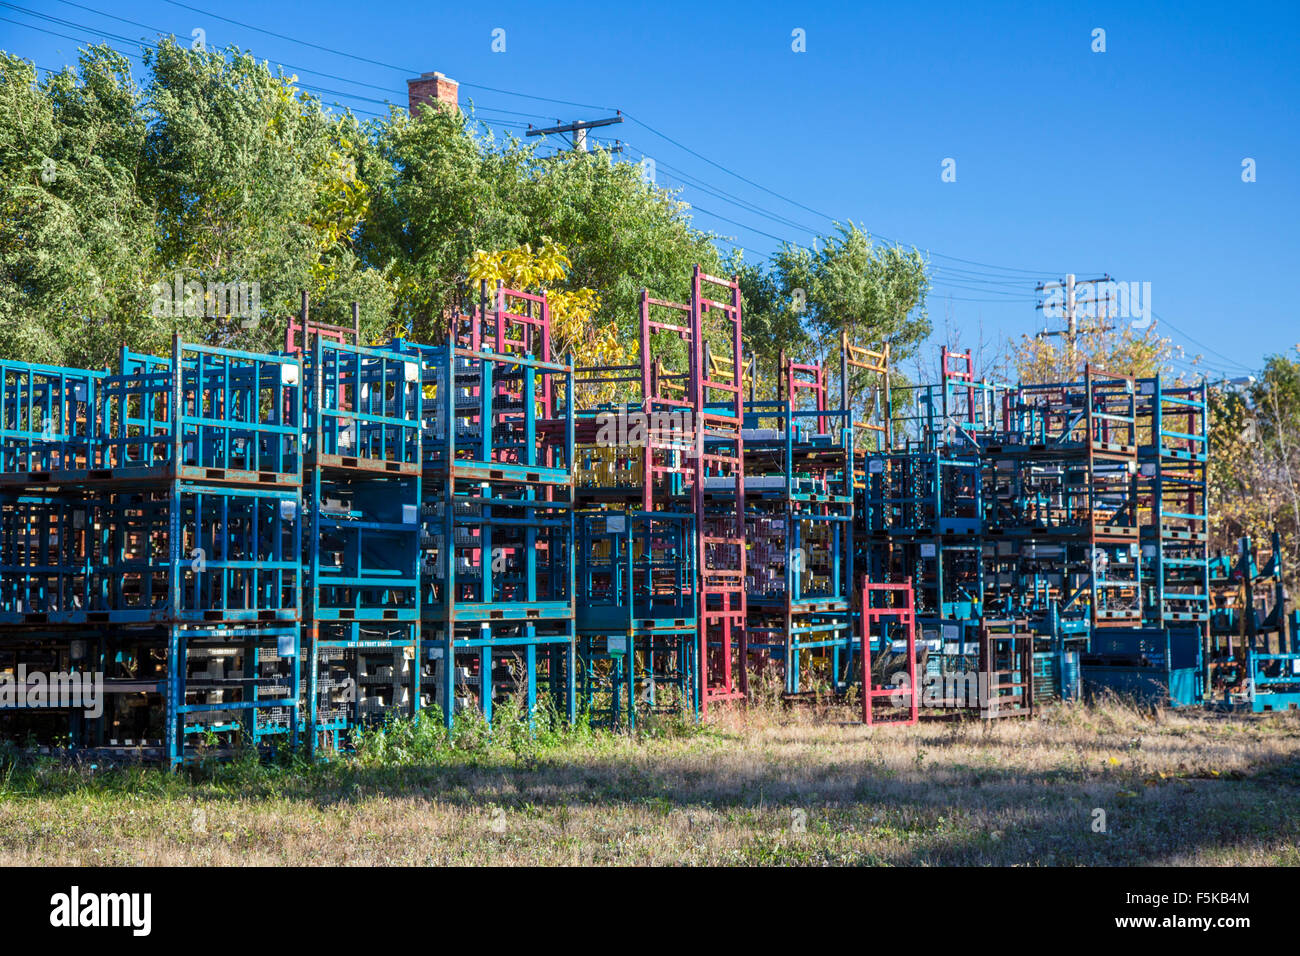 Detroit, Michigan - Shipping racks for auto parts abandoned on the site of a former industrial facility. - Stock Image